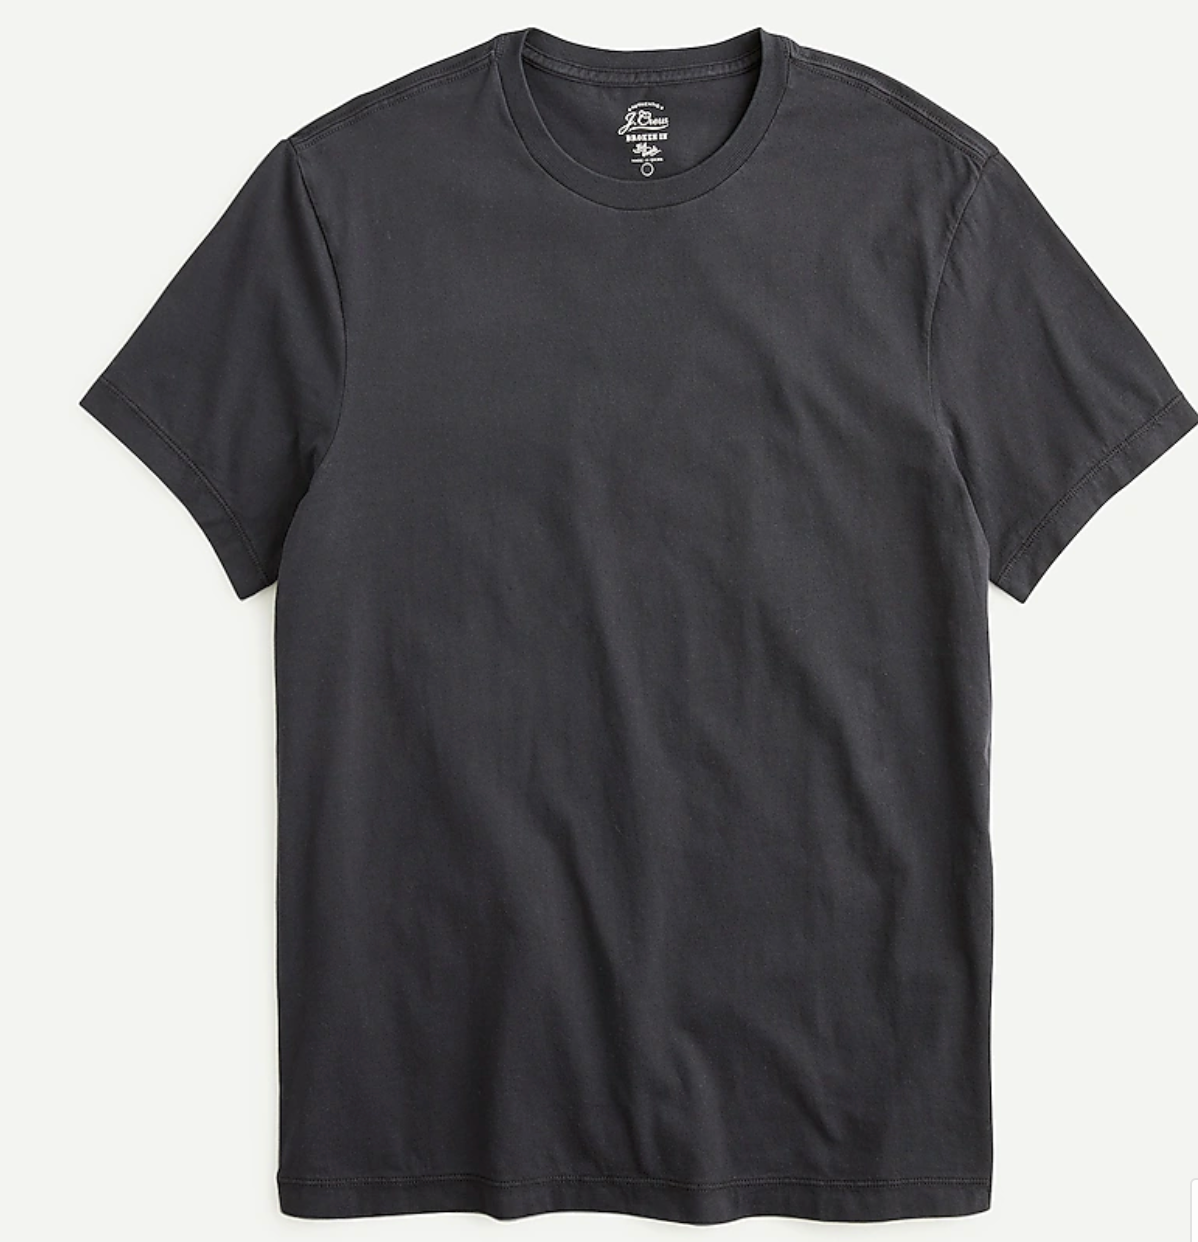 The Black T-Shirt Is a Men's Style Staple — These Are the Best Ones To Buy